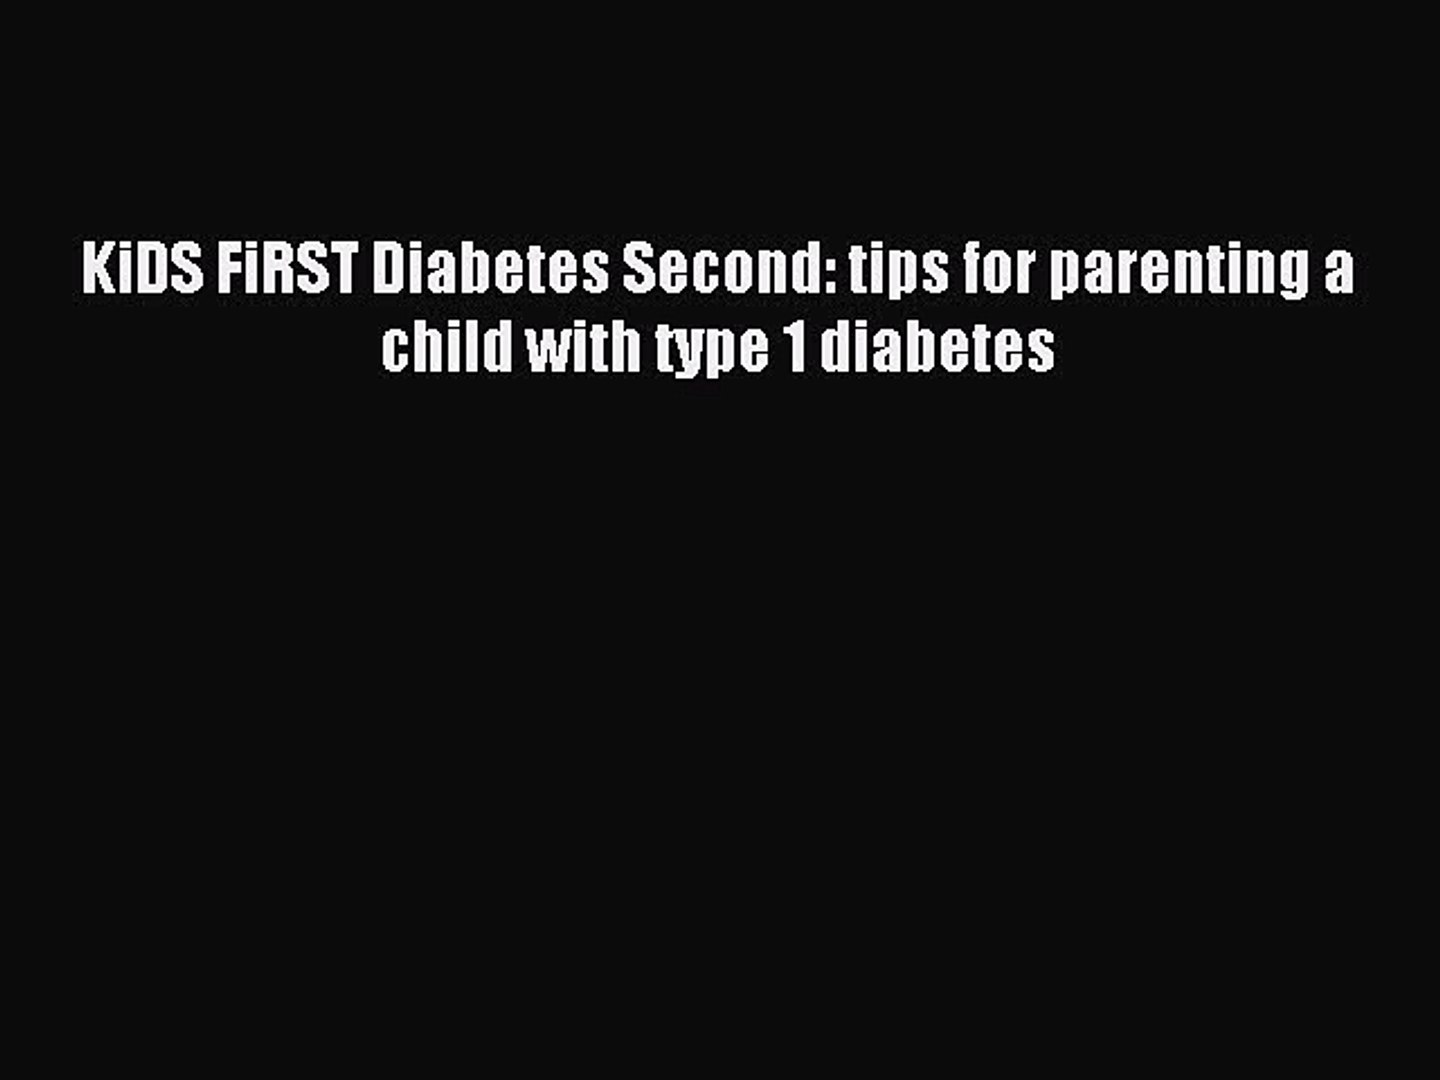 tips for parenting a child with type 1 diabetes KiDS FiRST Diabetes Second